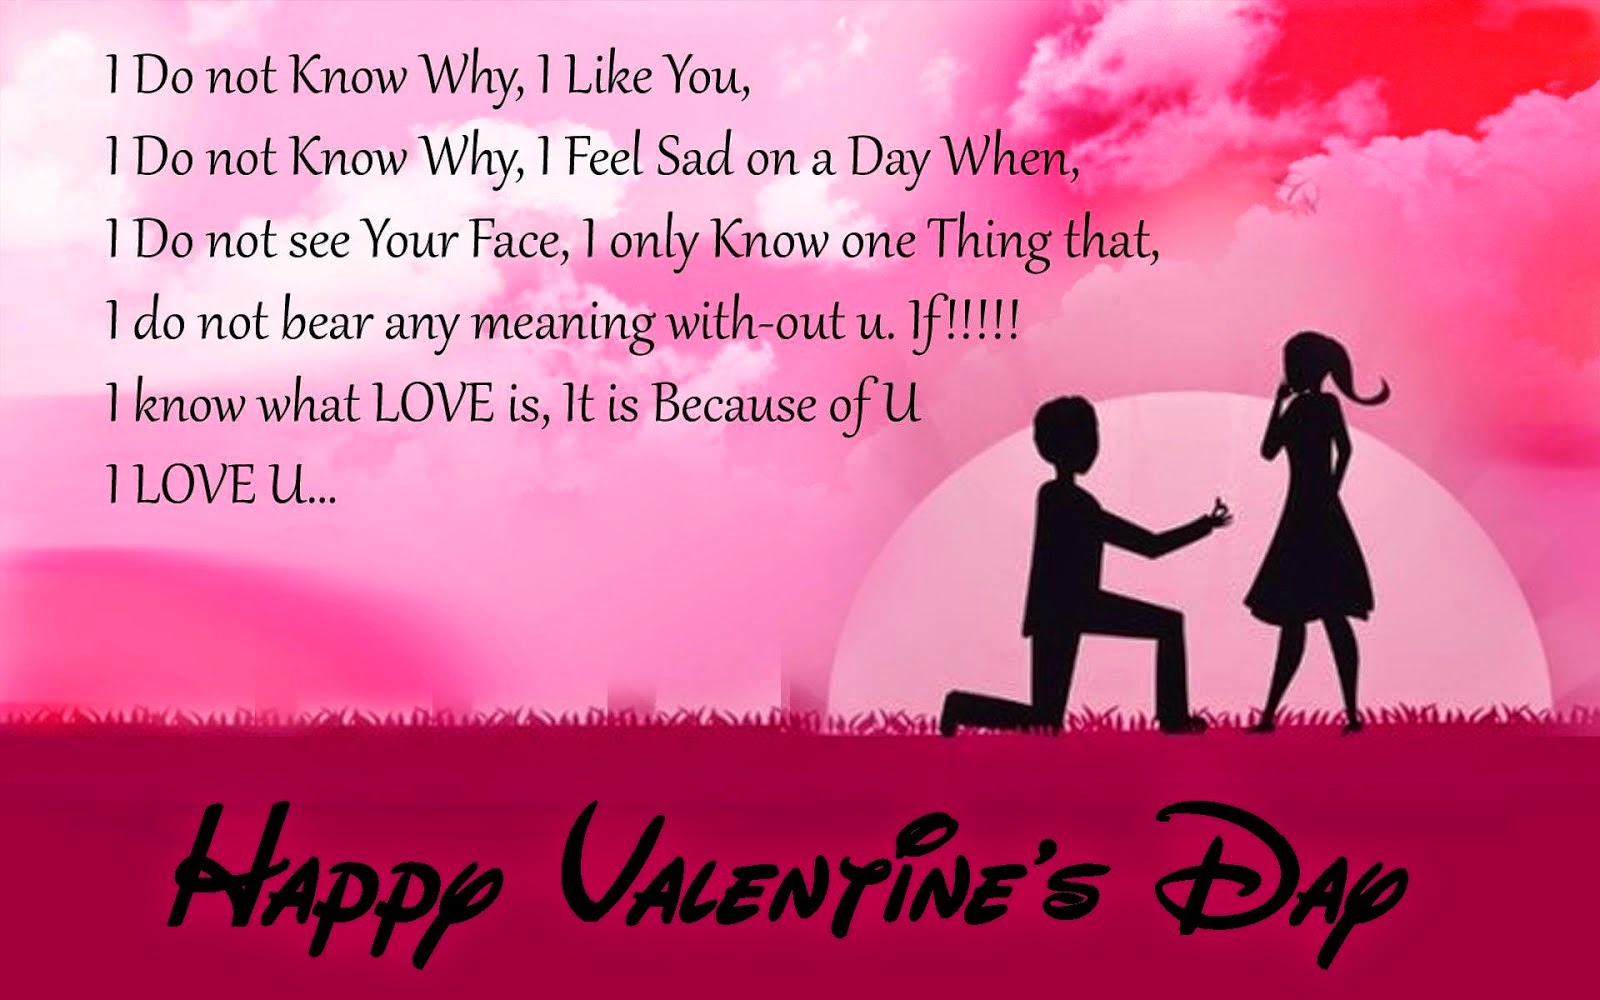 Happy Valentines Day Messages Greetings Wishes Upcomevent Com